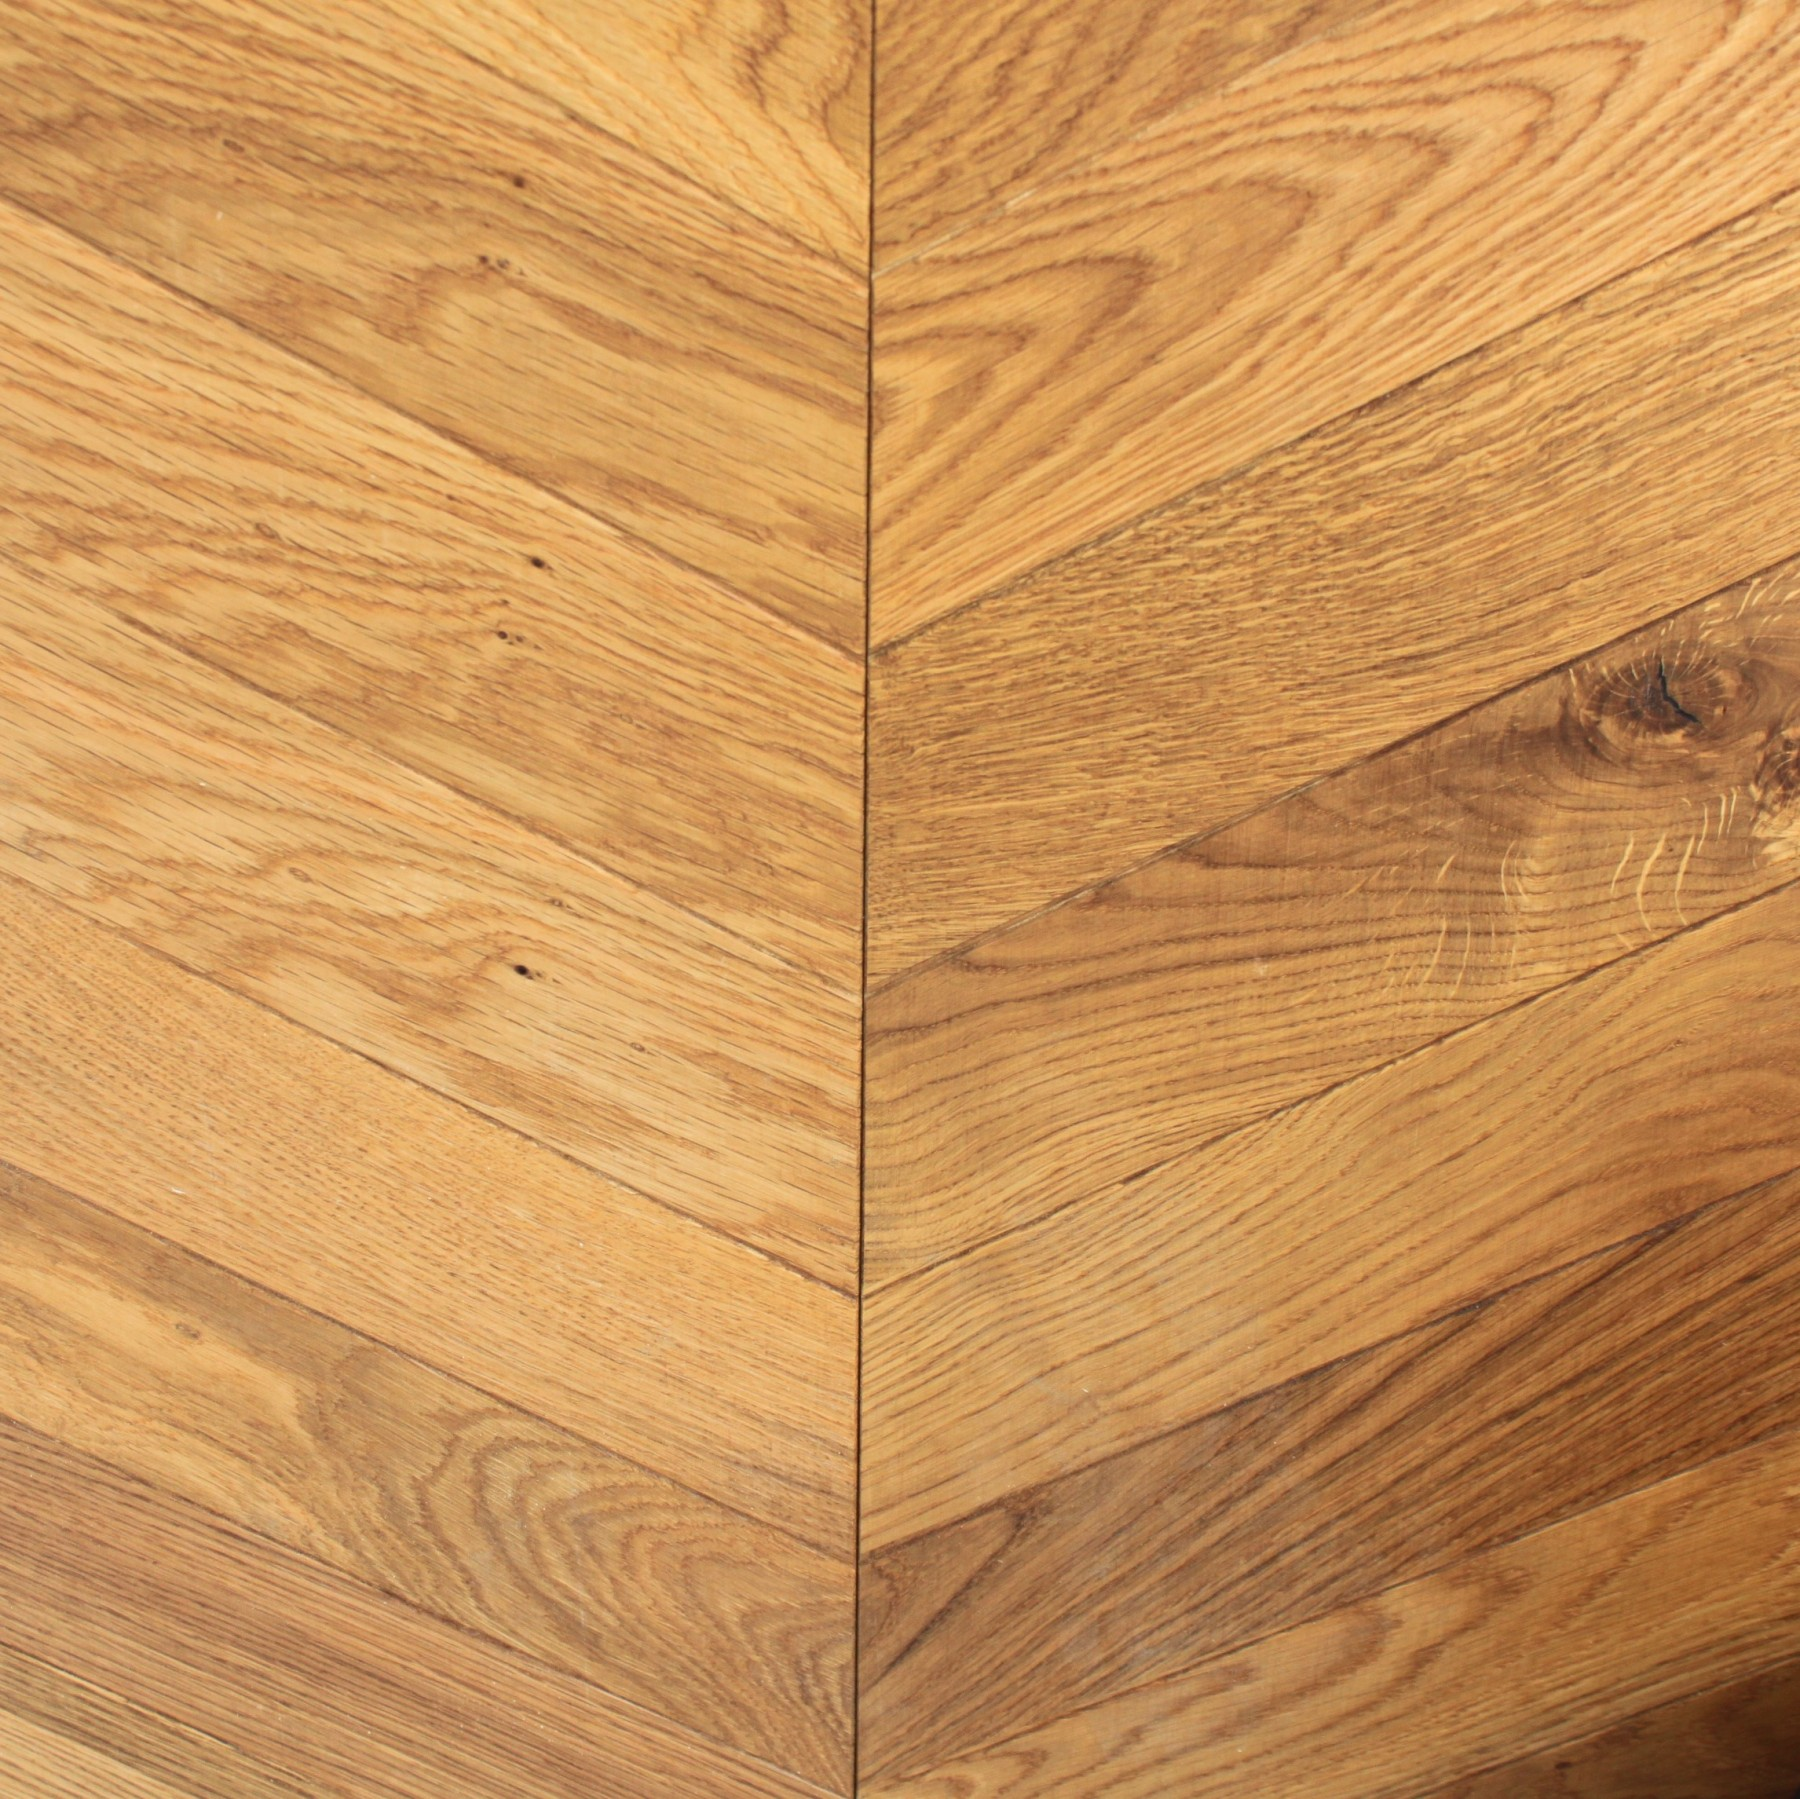 KAHRS Chevron Swedish Engineered wood Flooring  Oak Light Brown Oiled  305mm